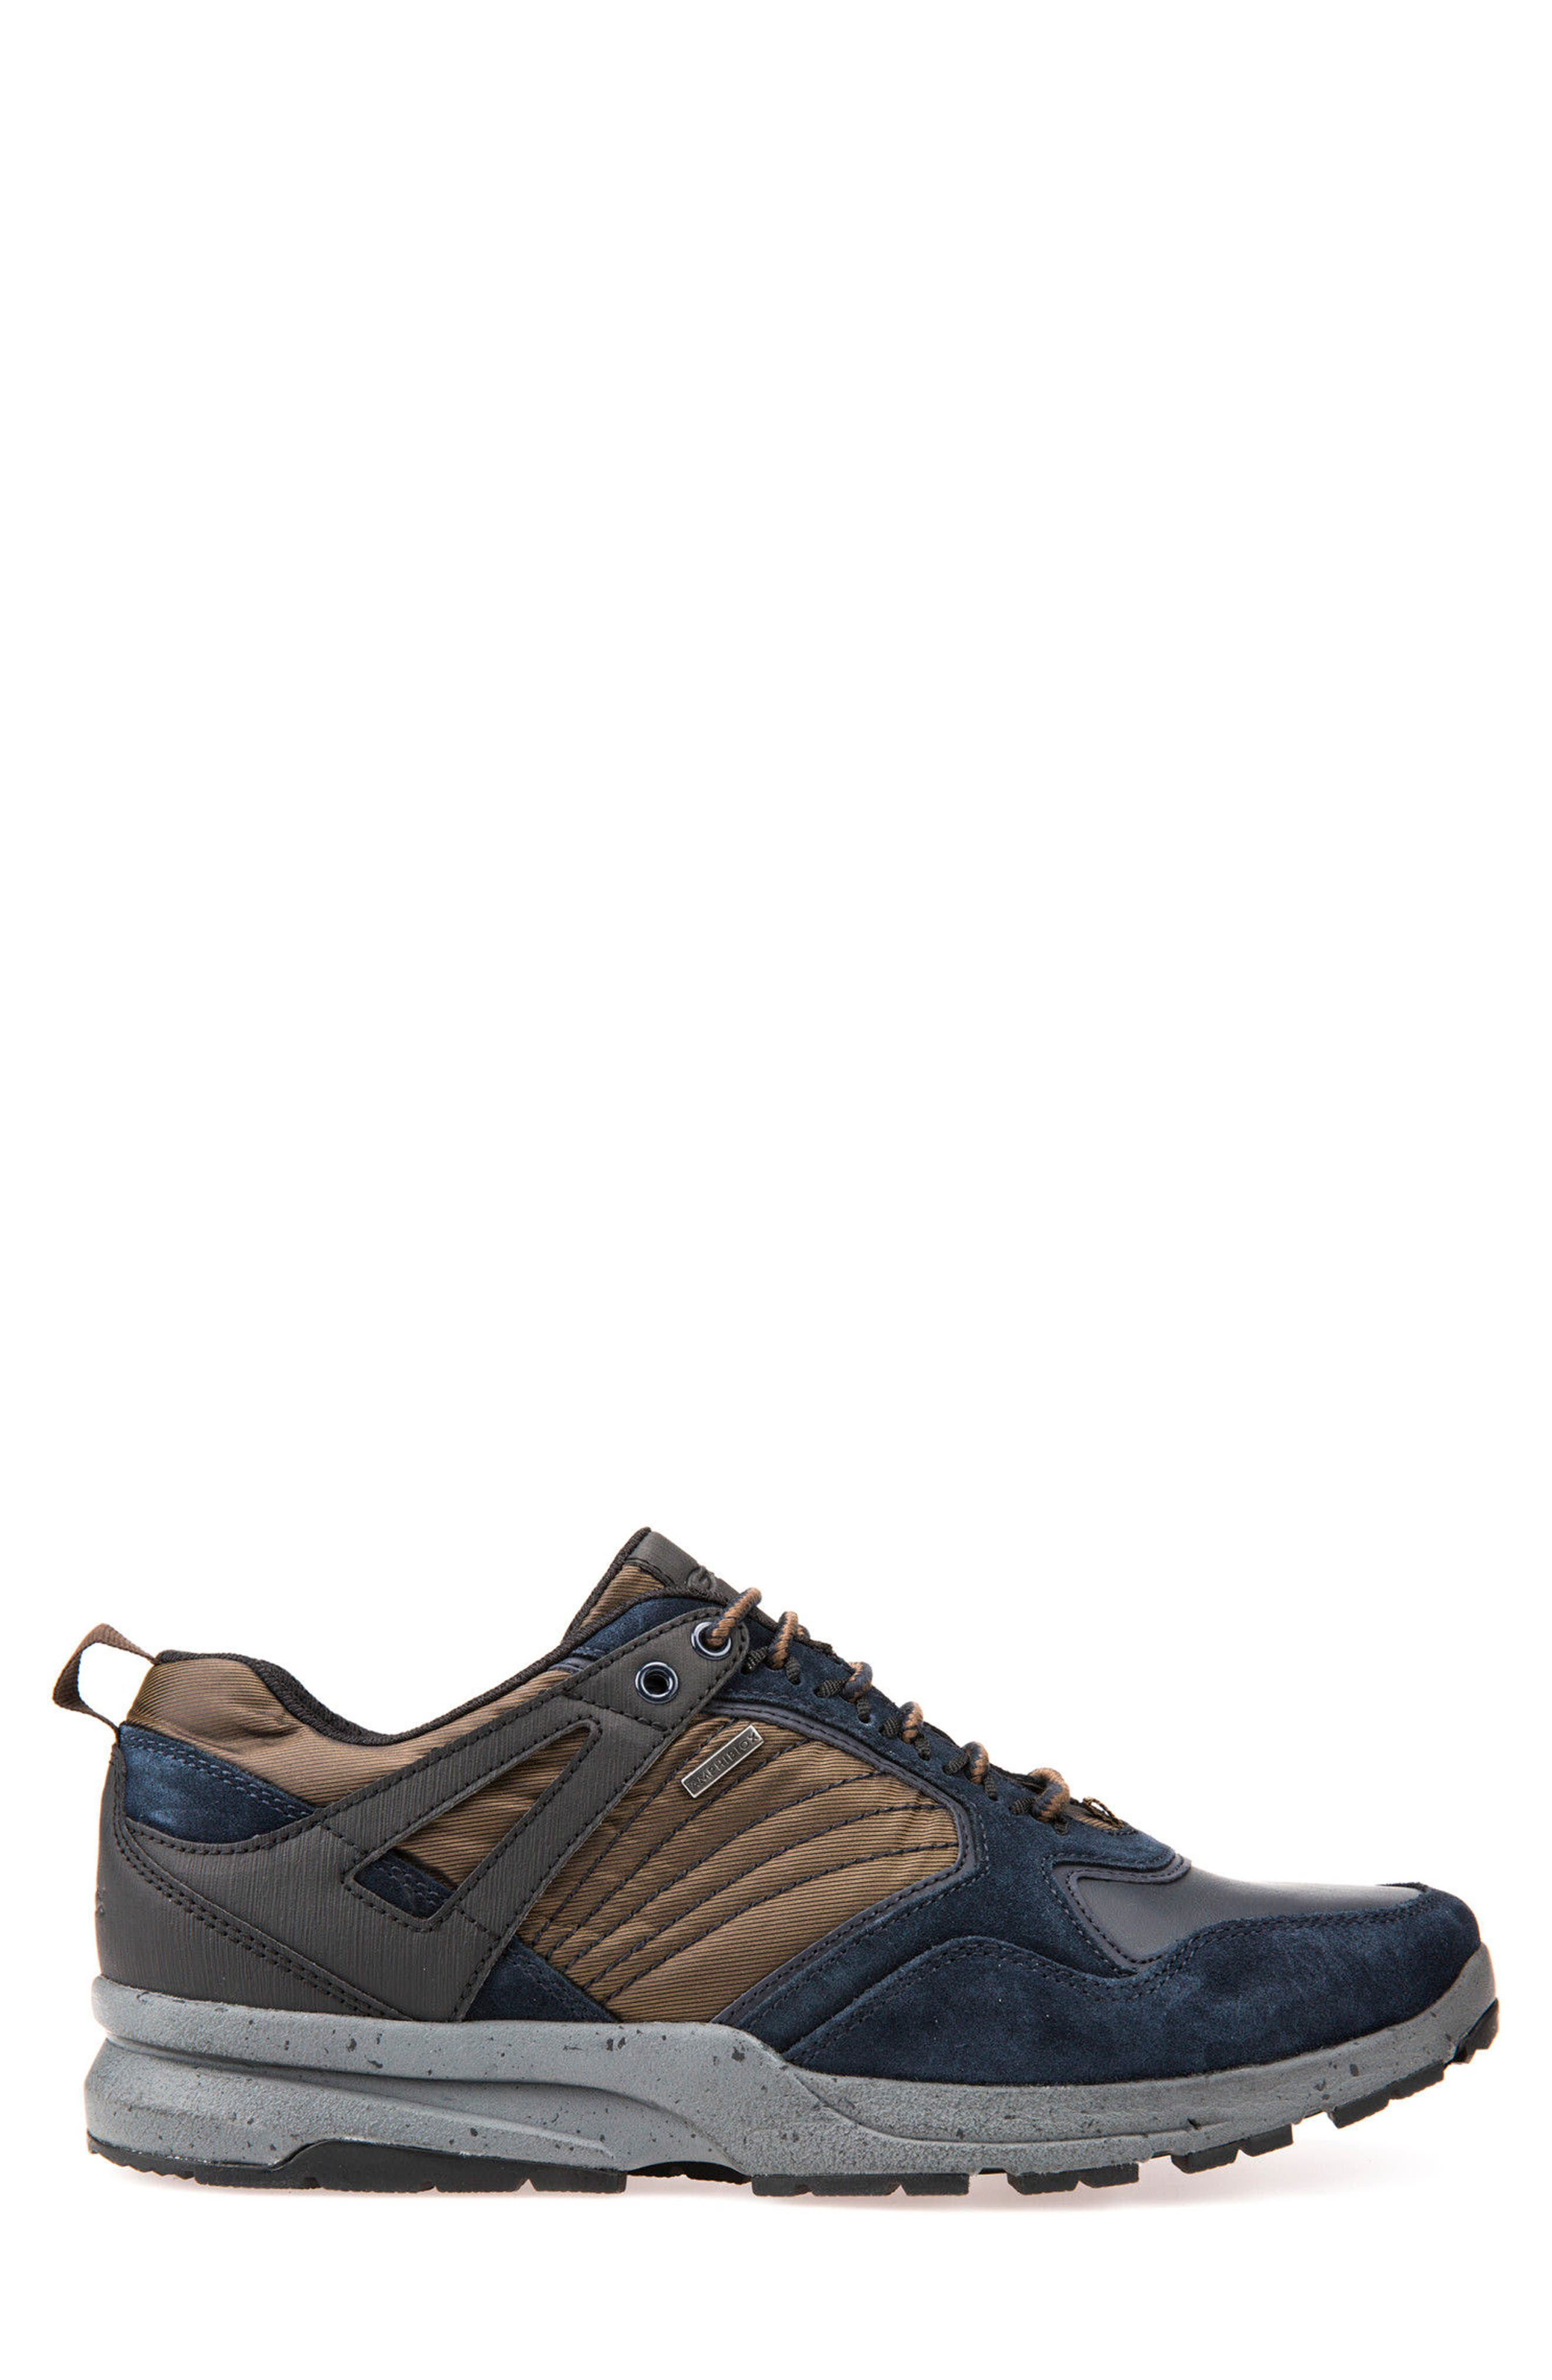 Gegy ABX Waterproof Sneaker,                             Alternate thumbnail 3, color,                             Navy/ Musk